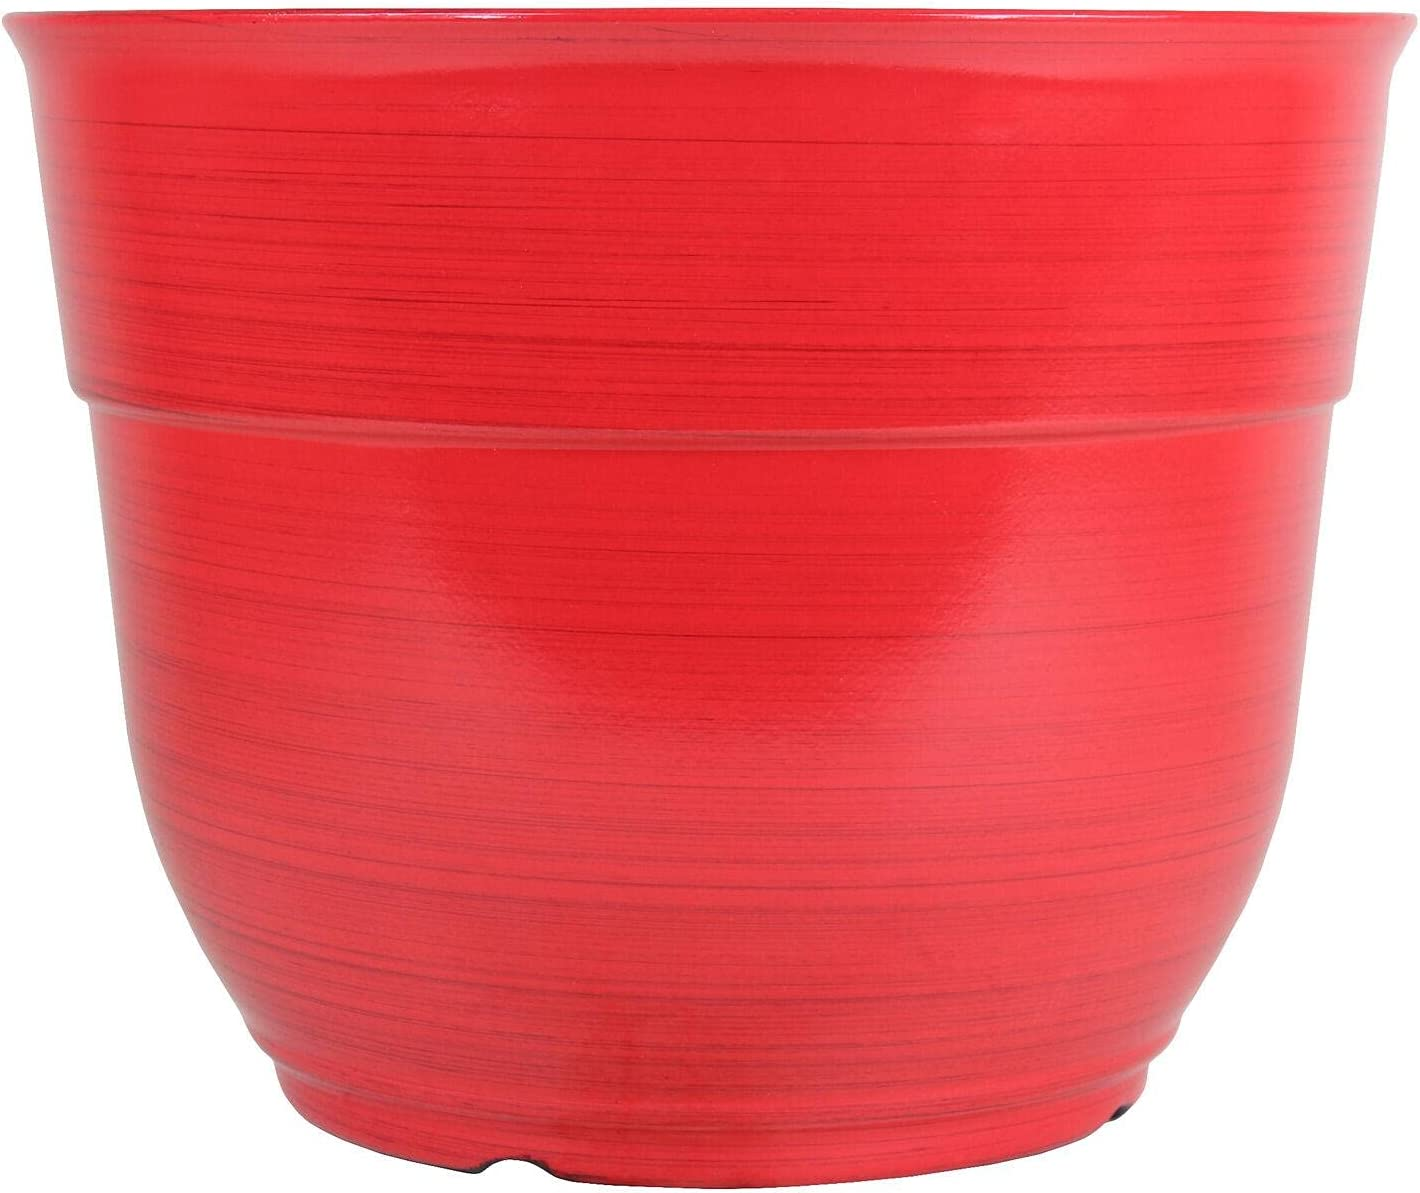 Large Plastic Max 62% OFF Planter Red 15